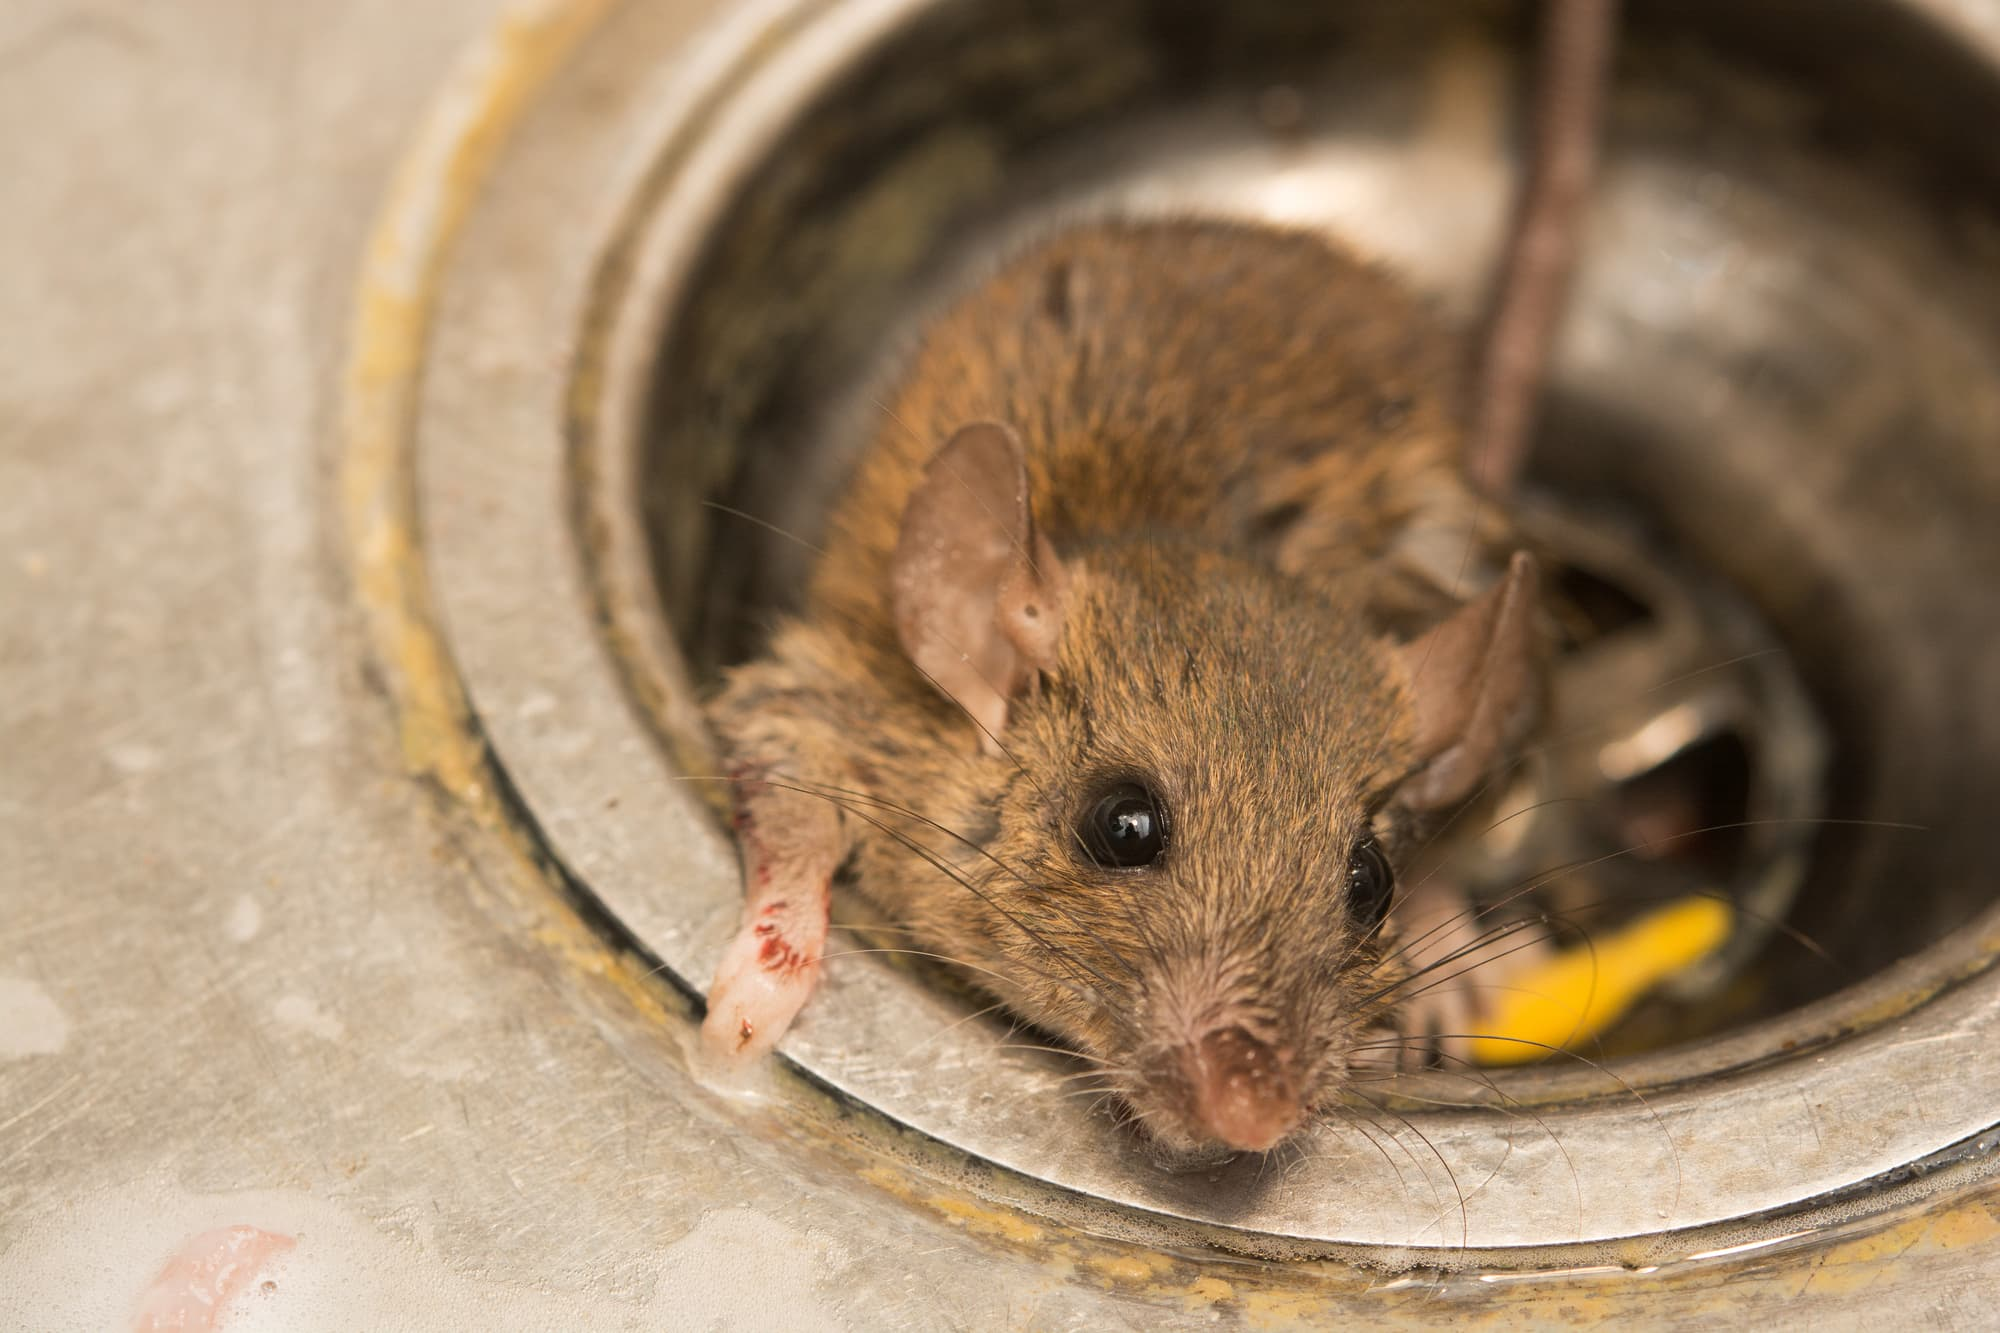 Home Pest Control Services Never Disappoint